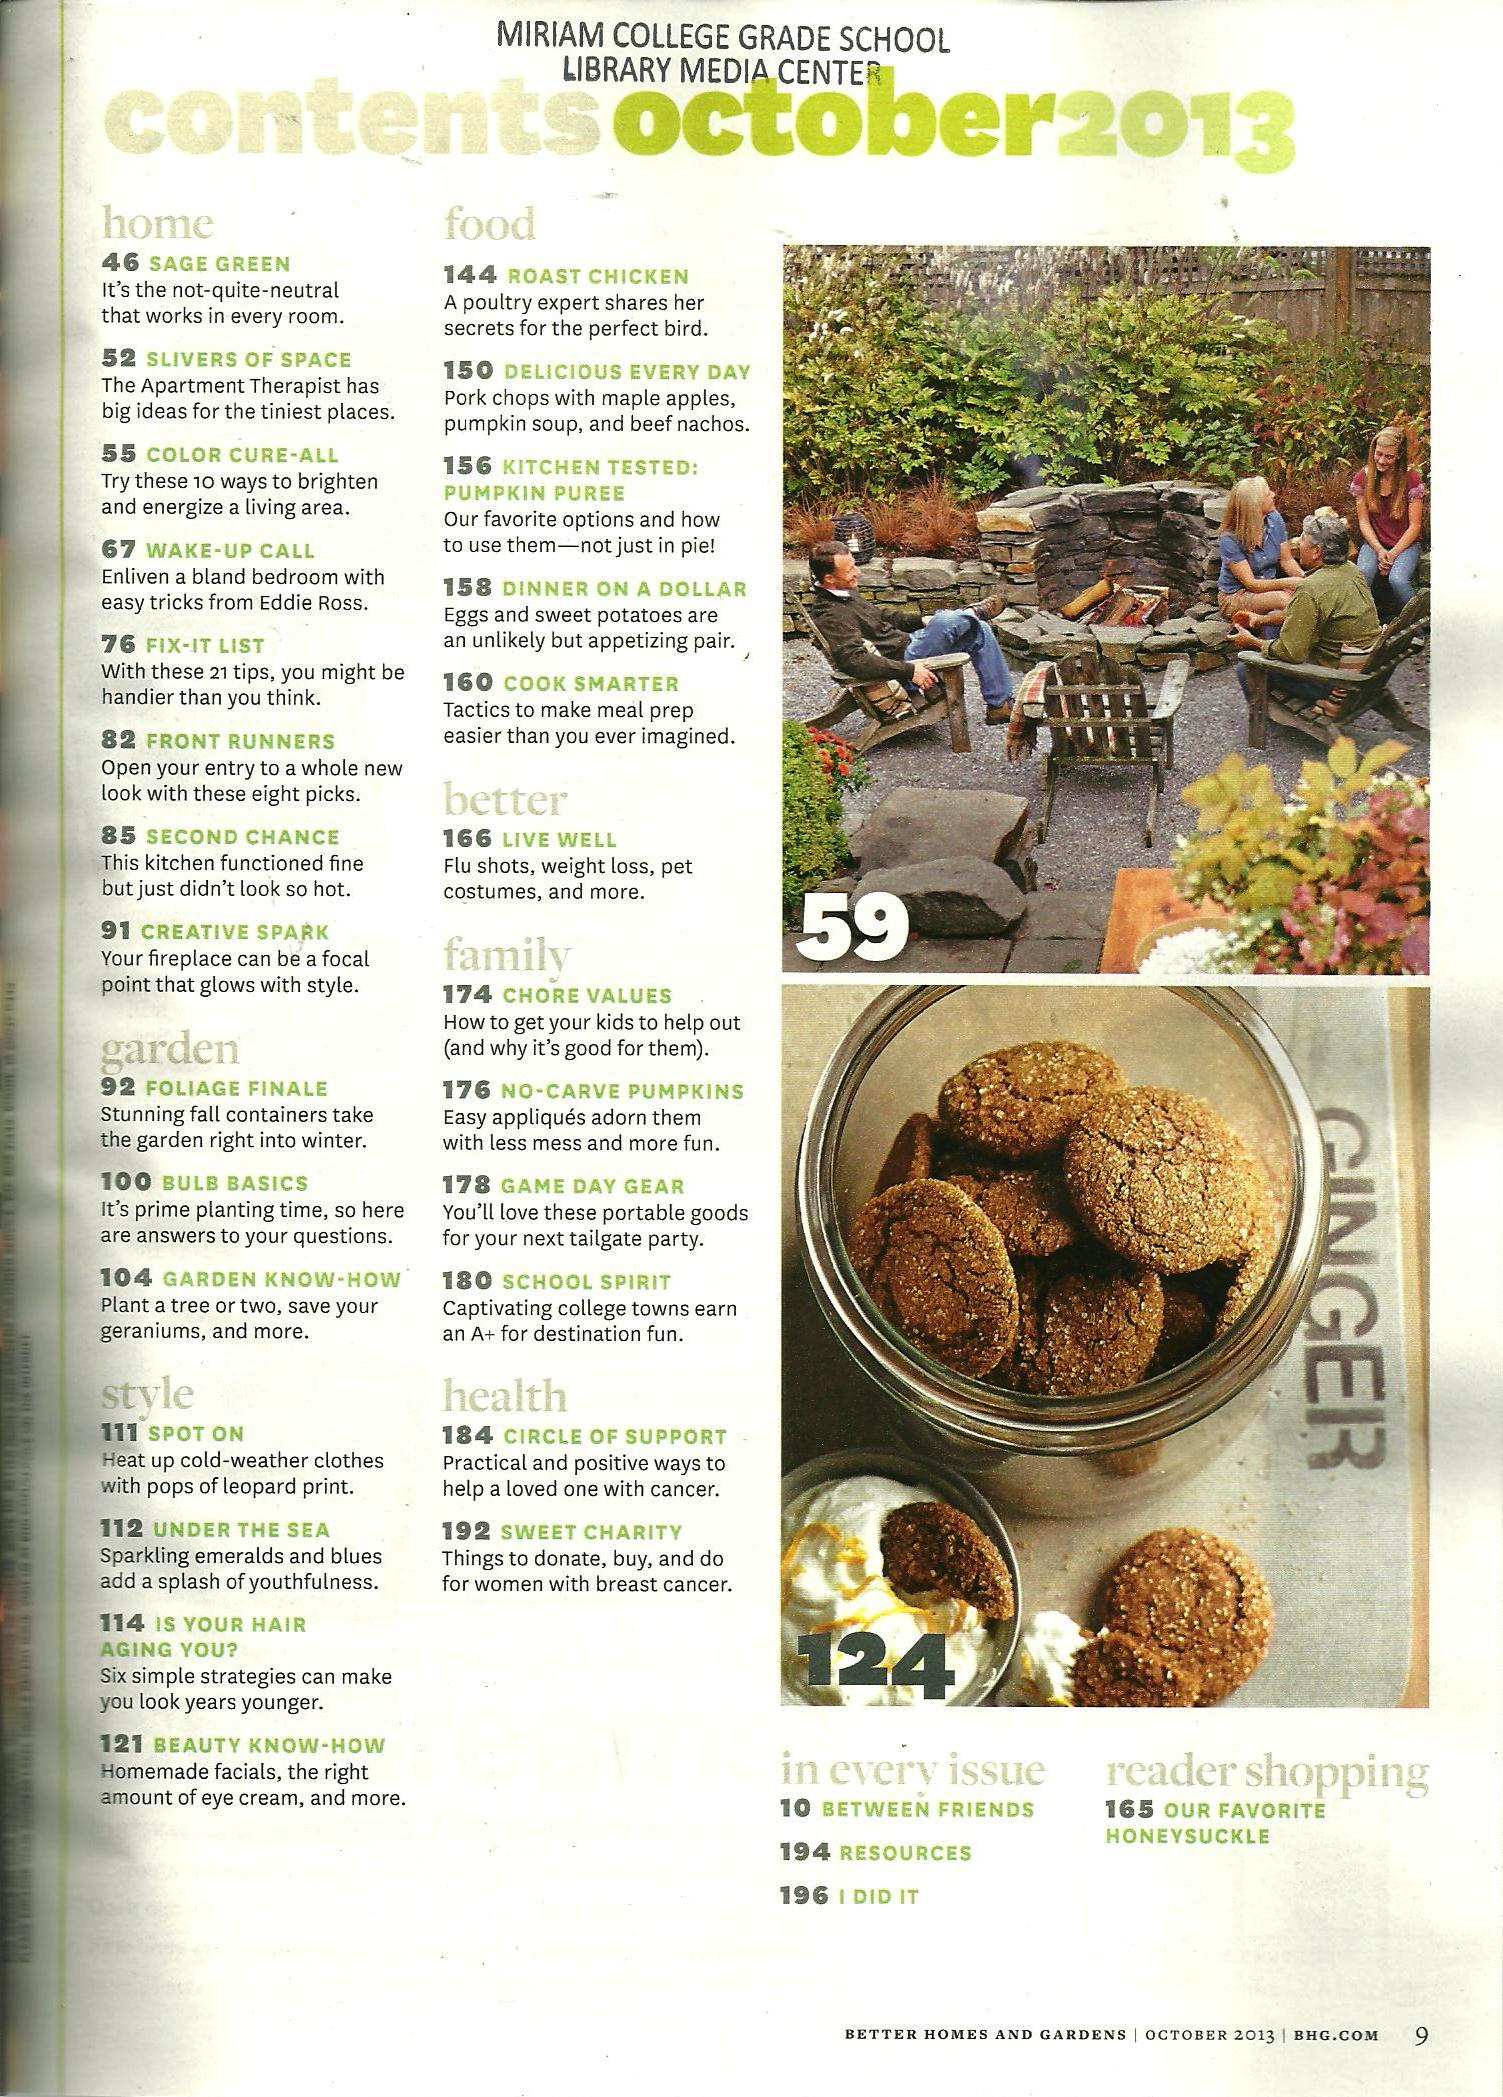 better homes and gardens magazine october 2013 pictures to pin on - Free Better Homes And Gardens Magazine